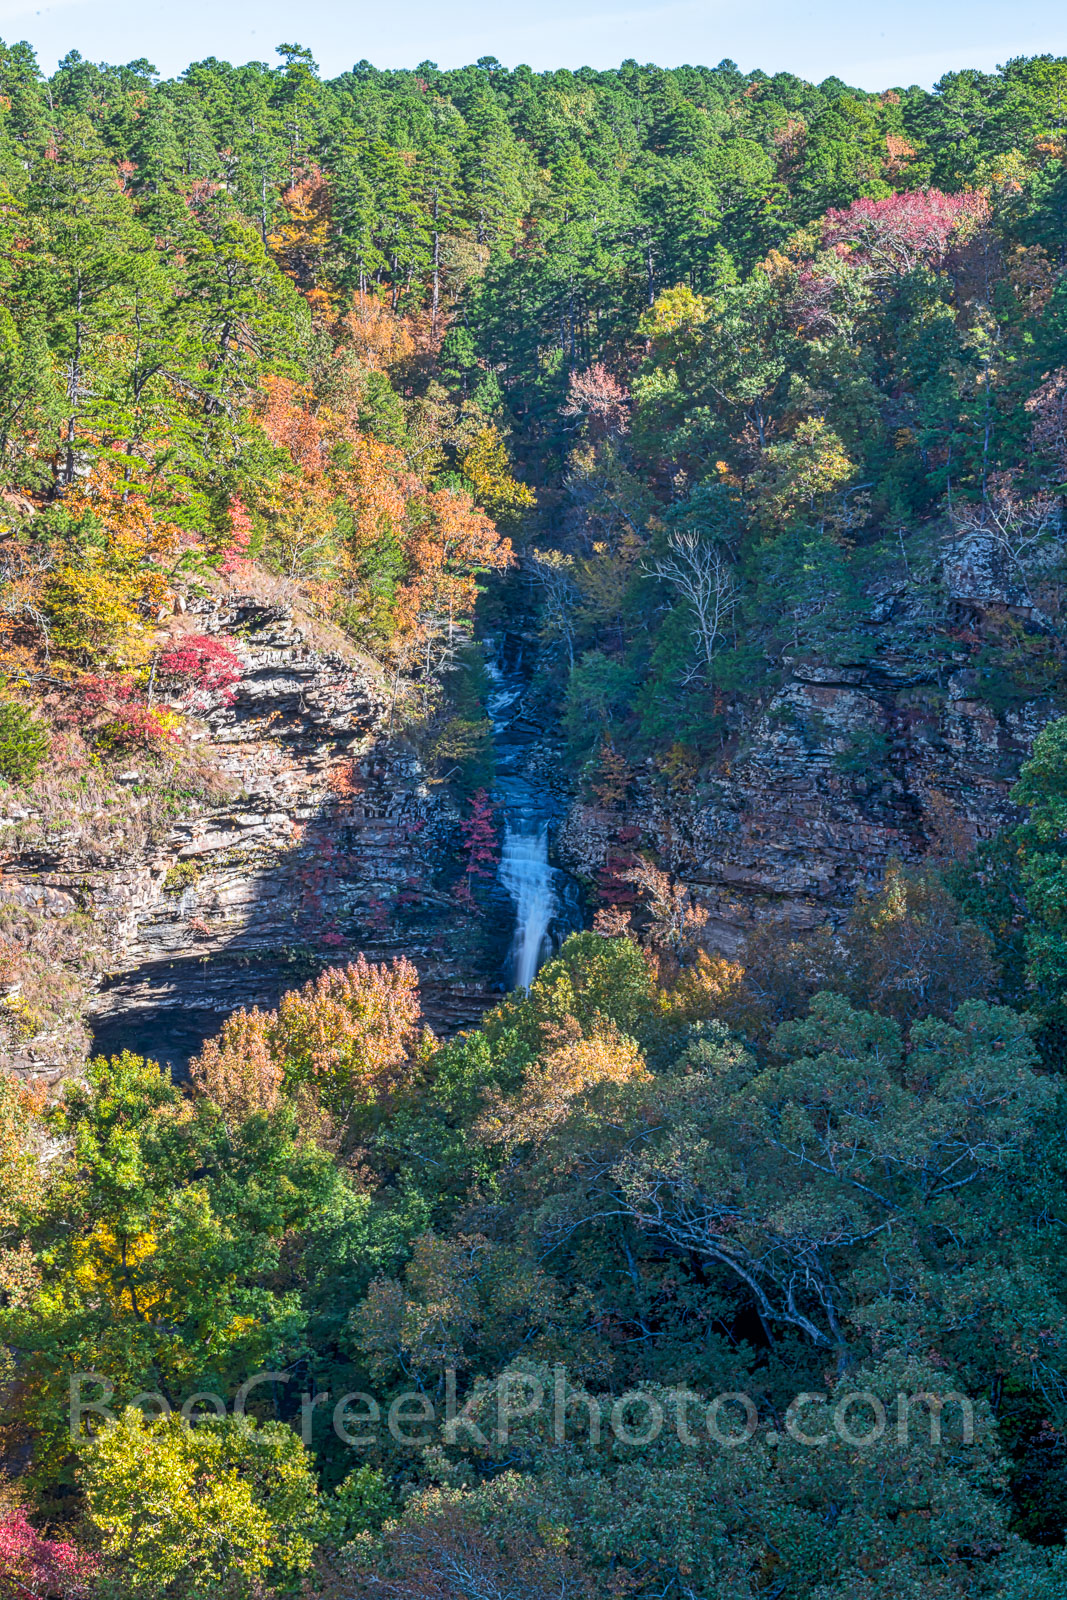 cedar fall, waterfall, bluff, cliff, colorful trees, autumn, fall colors, river, pines, southern yellow pine, maples, sweet gum, black hickory, waters, Lake Bailey, stream, vertical, fall scenery, , photo